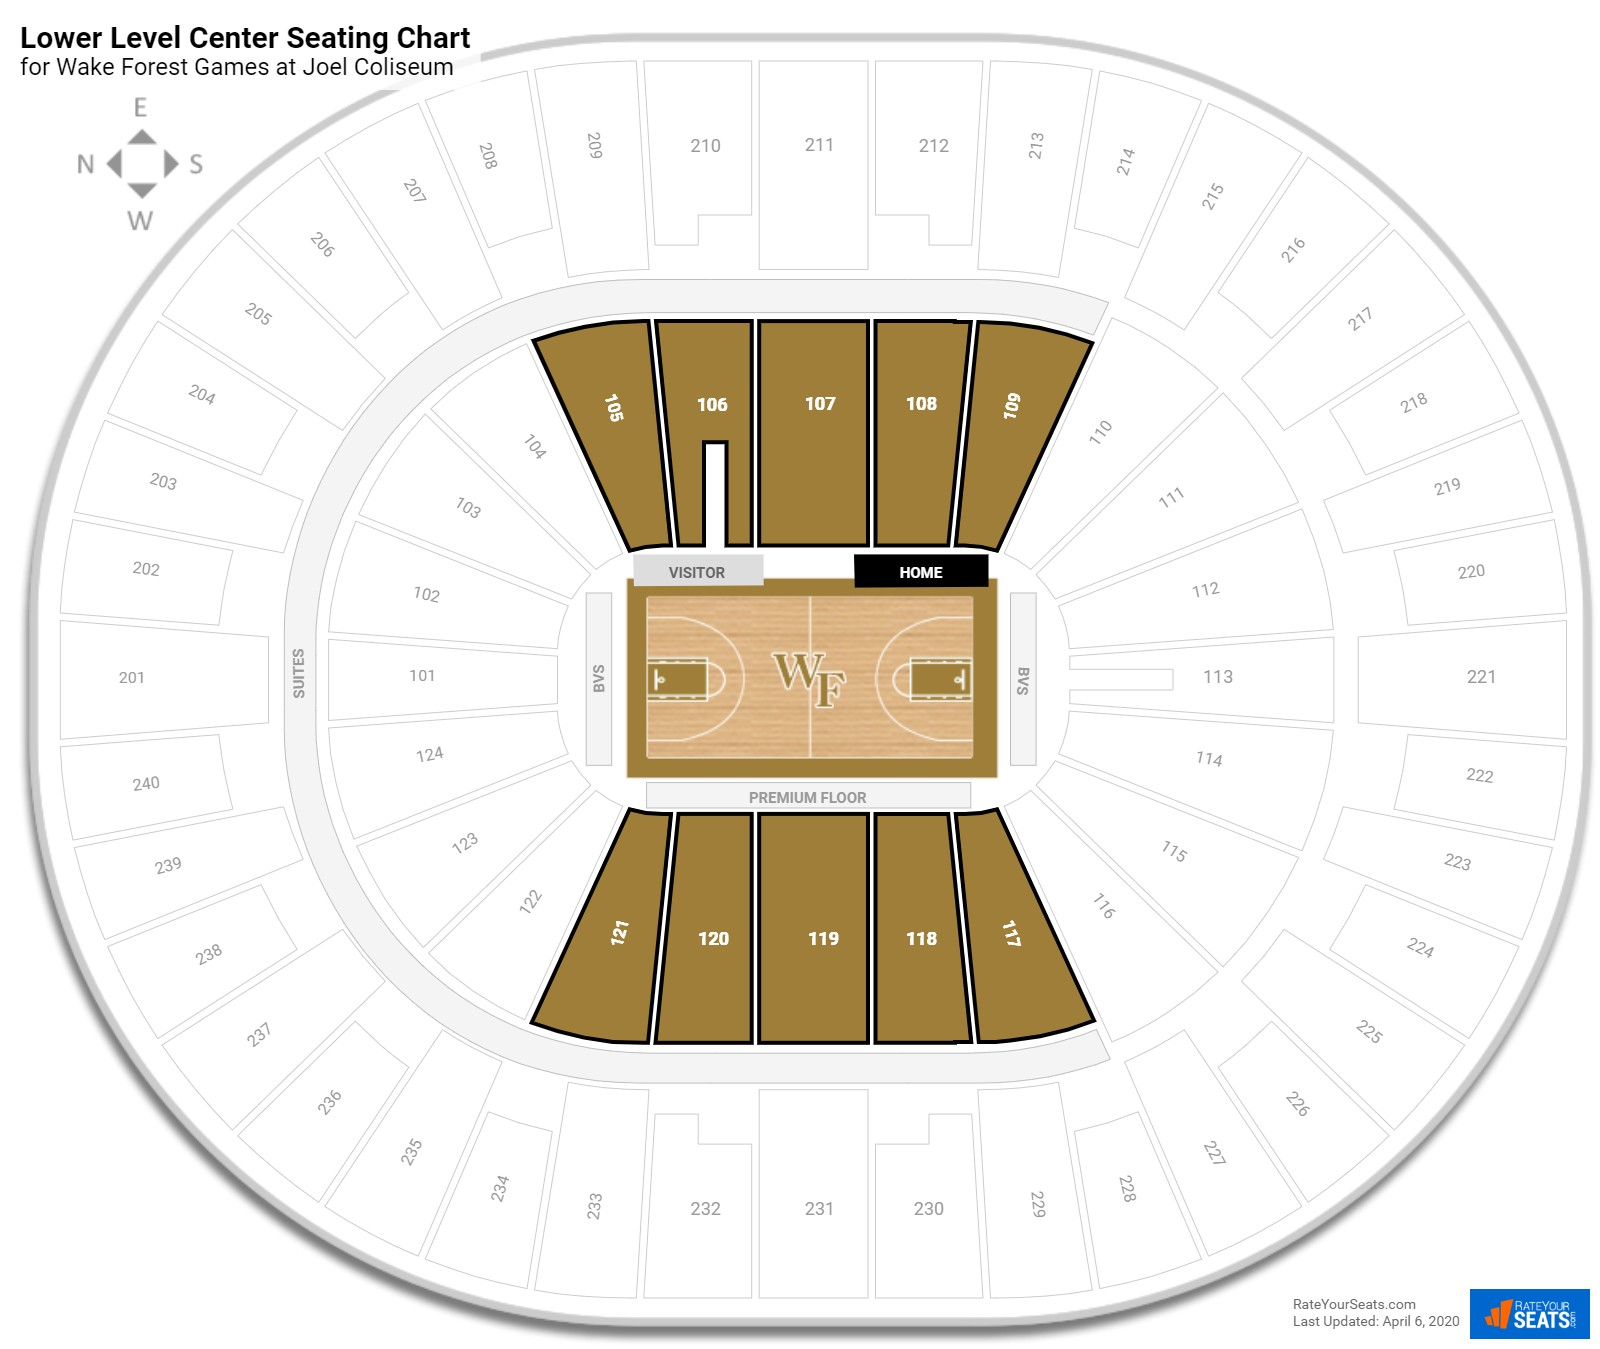 Joel Coliseum  Lower Level Center seating chart